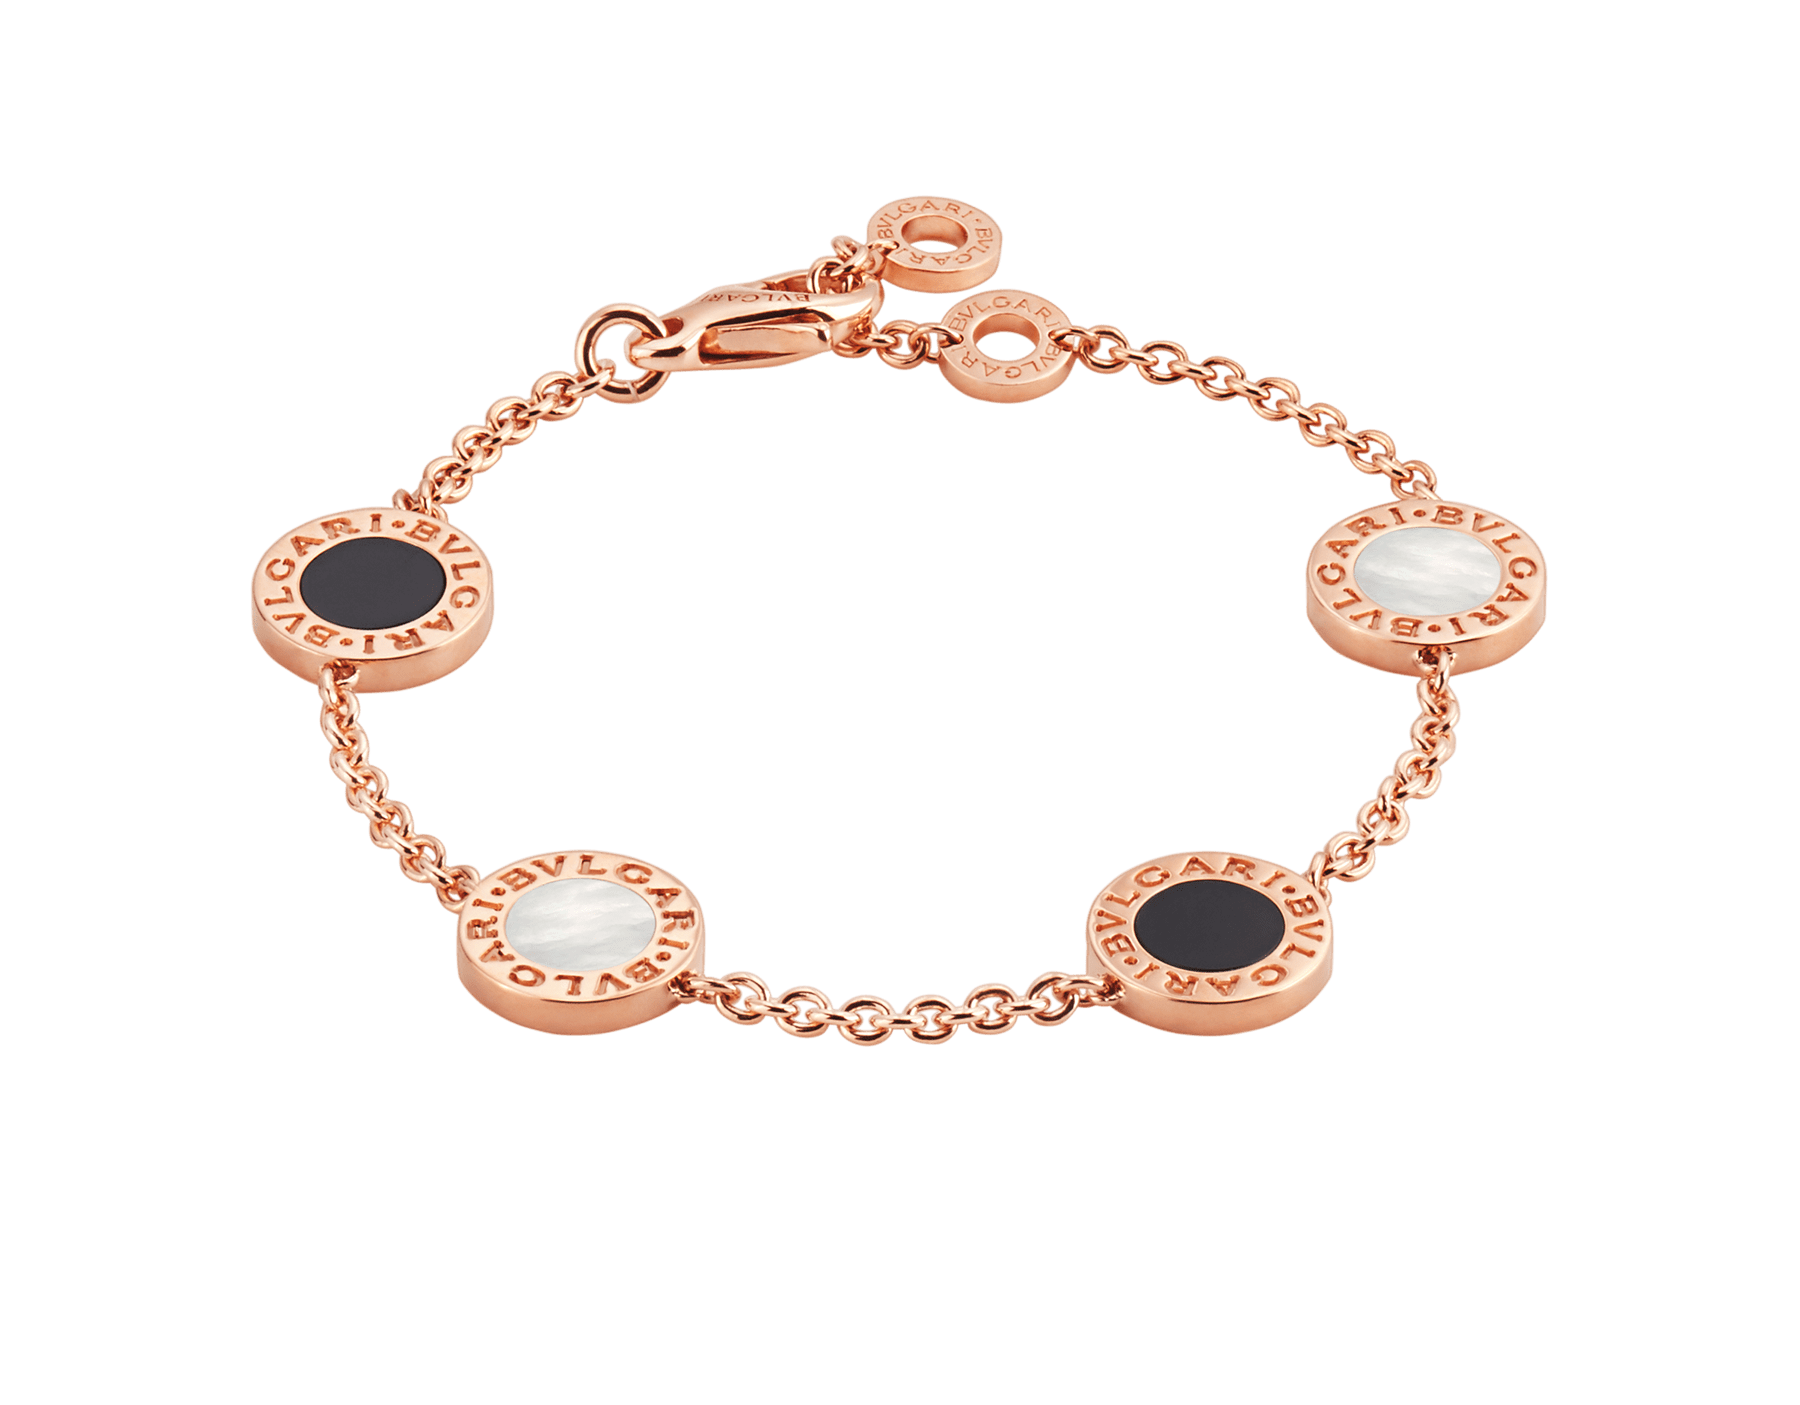 BVLGARI BVLGARI bracelet in 18 kt rose gold set with mother-of-pearl and onyx elements BR857243 image 1